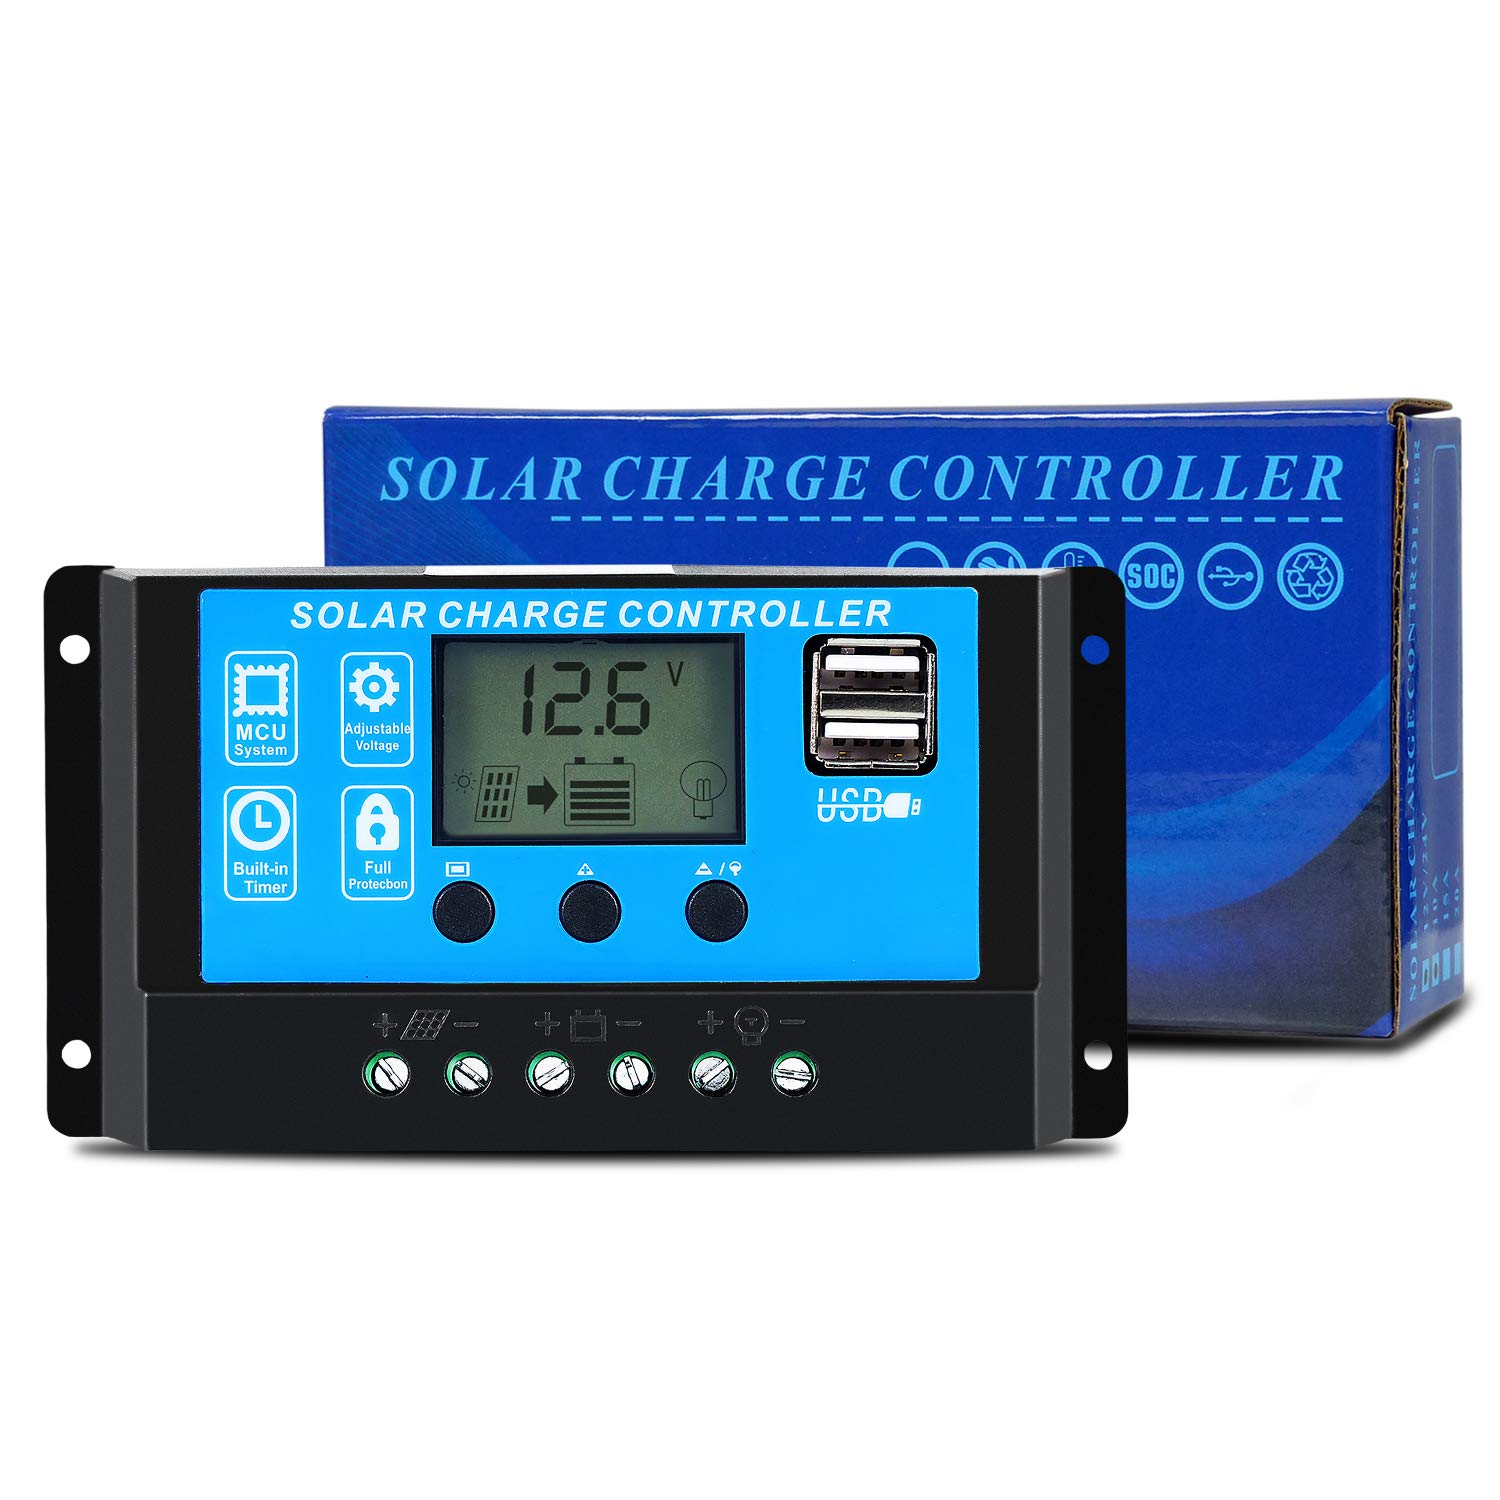 Ela PWM Solar Charge Controller 10A 12V 24V Auto Work Max PV Solar Panel Input 120W 240W Solar Regulator with Dual USB Ports LCD Display Overload Protection Timer Setting ON Off GC1024